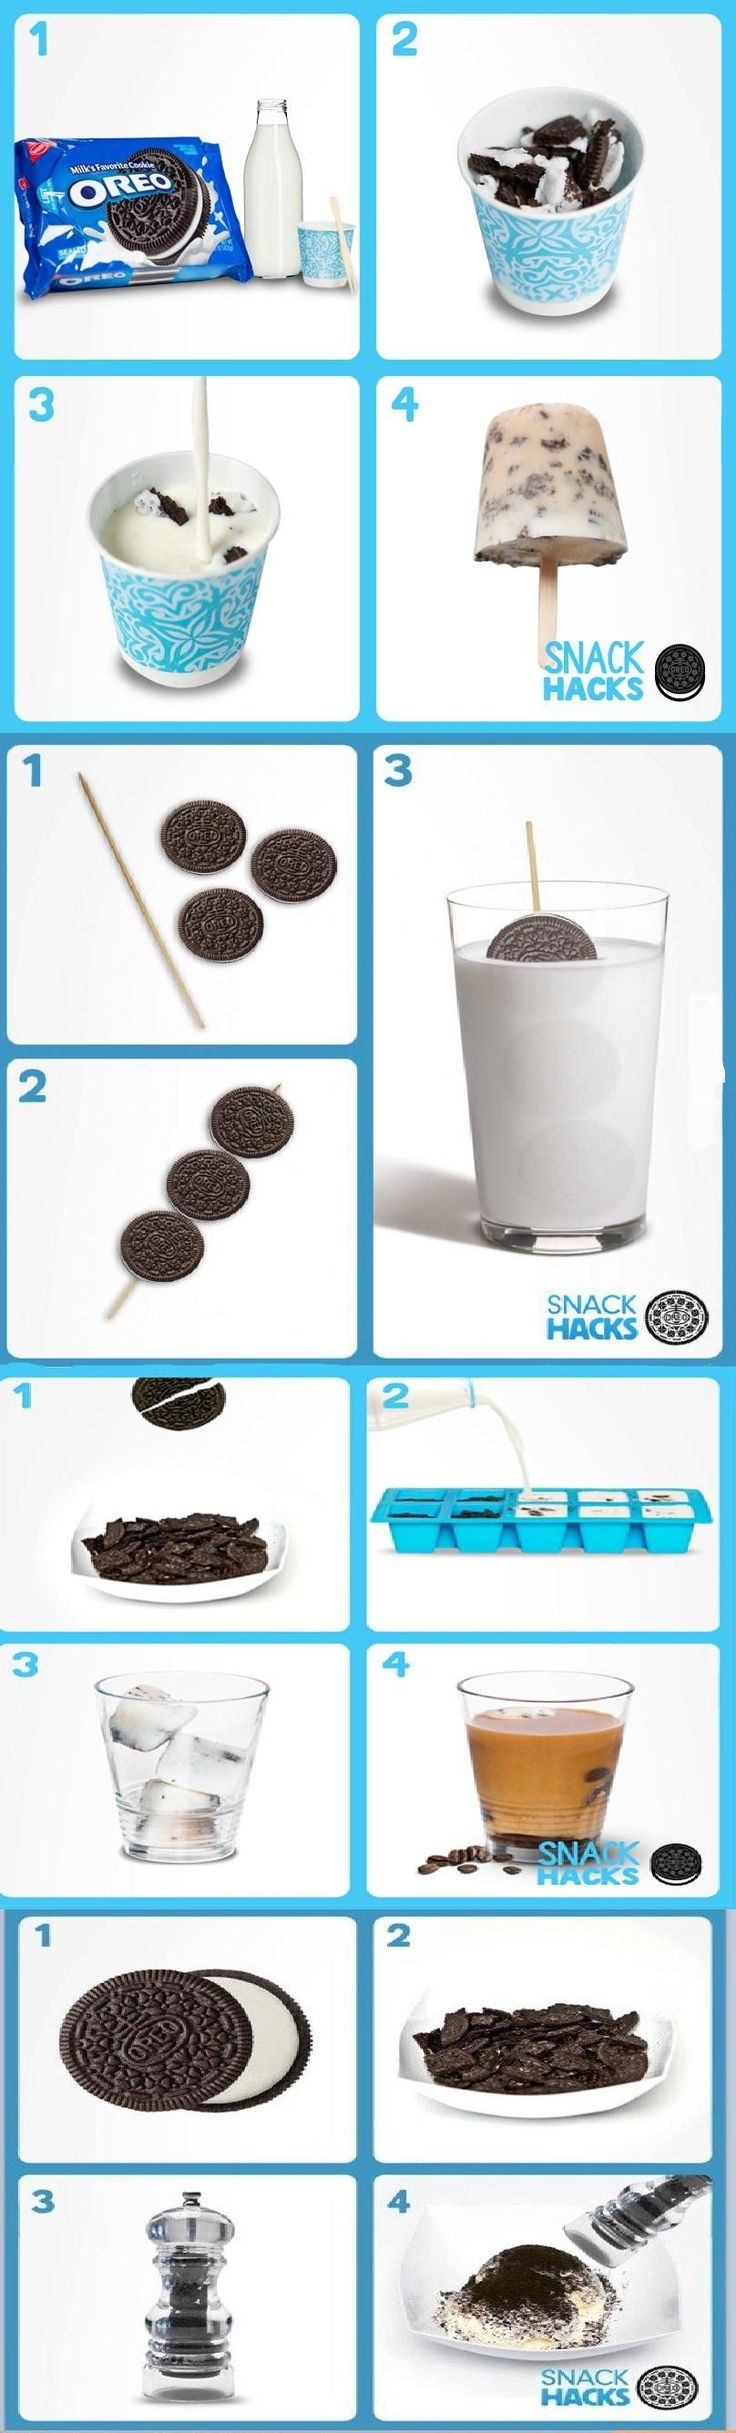 Oreo Snack Hacks cookies chocolate diy recipe oreos recipes ingredients instructions desert recipes easy recipes snacks desert recipe kids recipes no bake